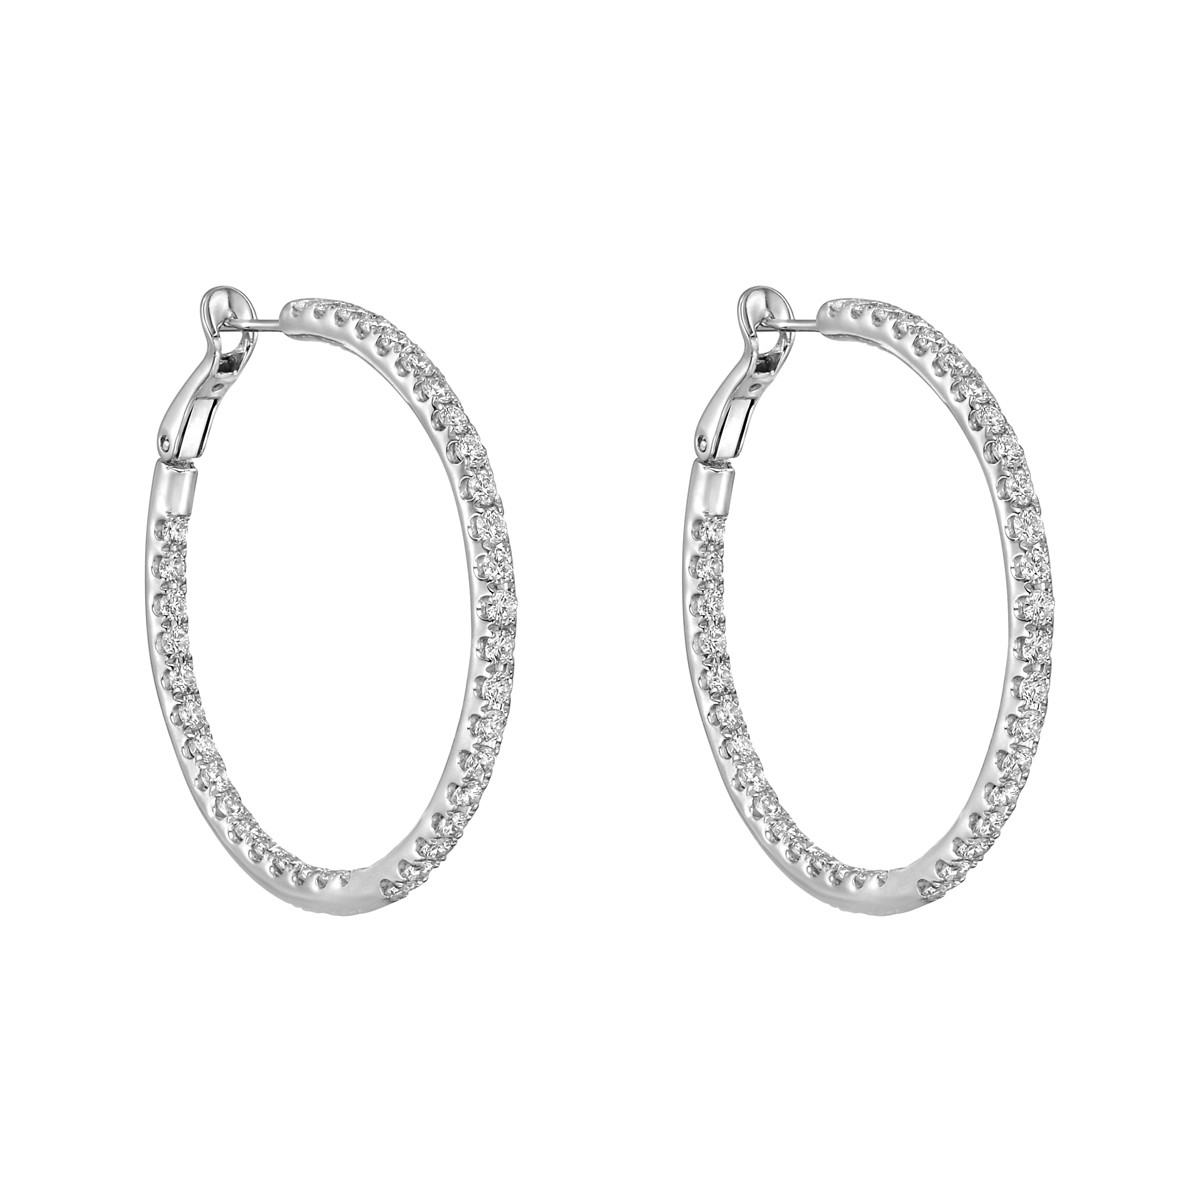 Medium Diamond Hoop Earrings (~3 ct tw)